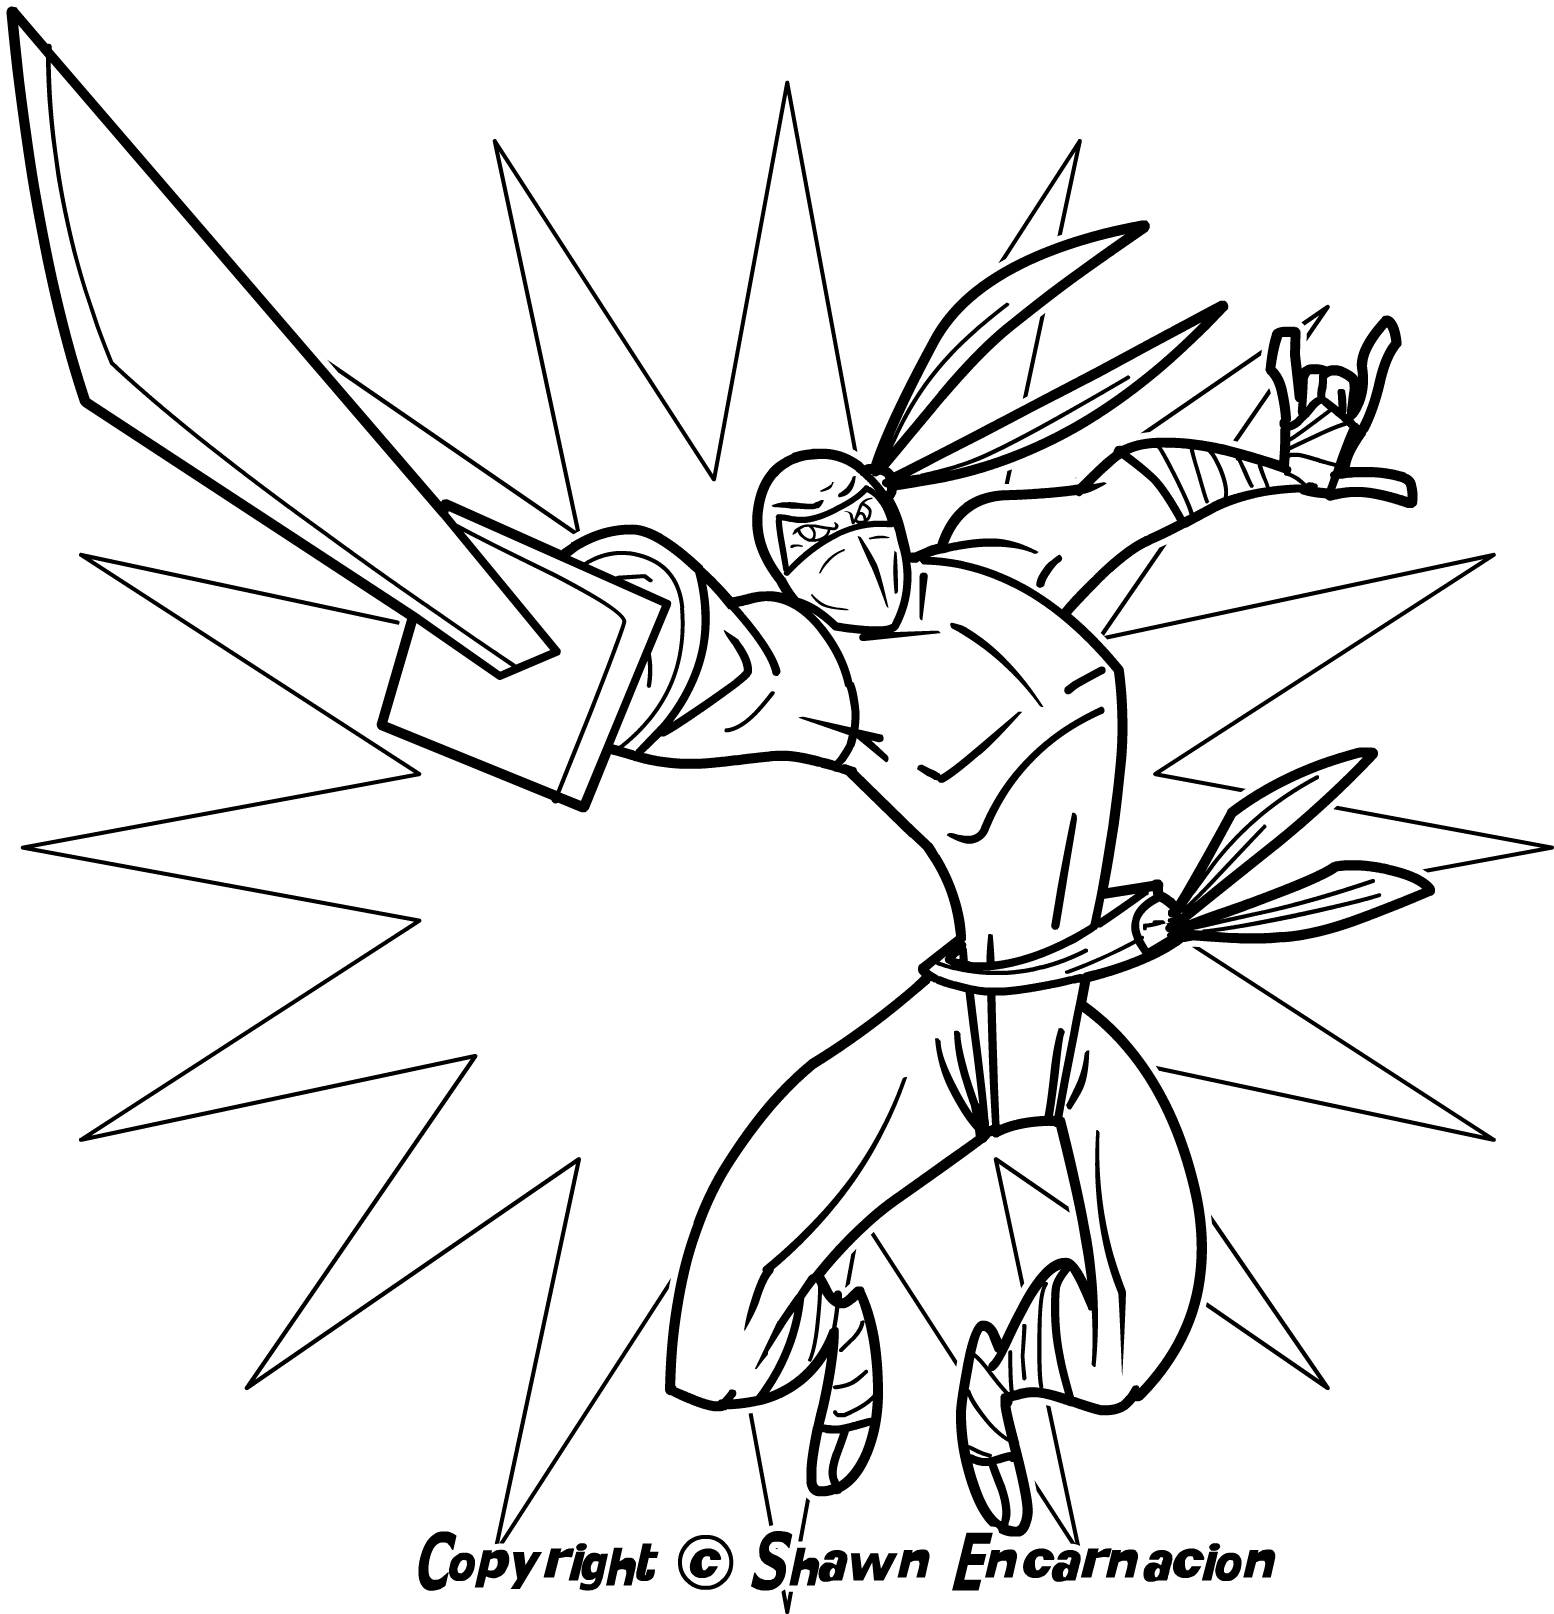 ninja coloring book get this ninja coloring pages for kids 2abr8 book coloring ninja